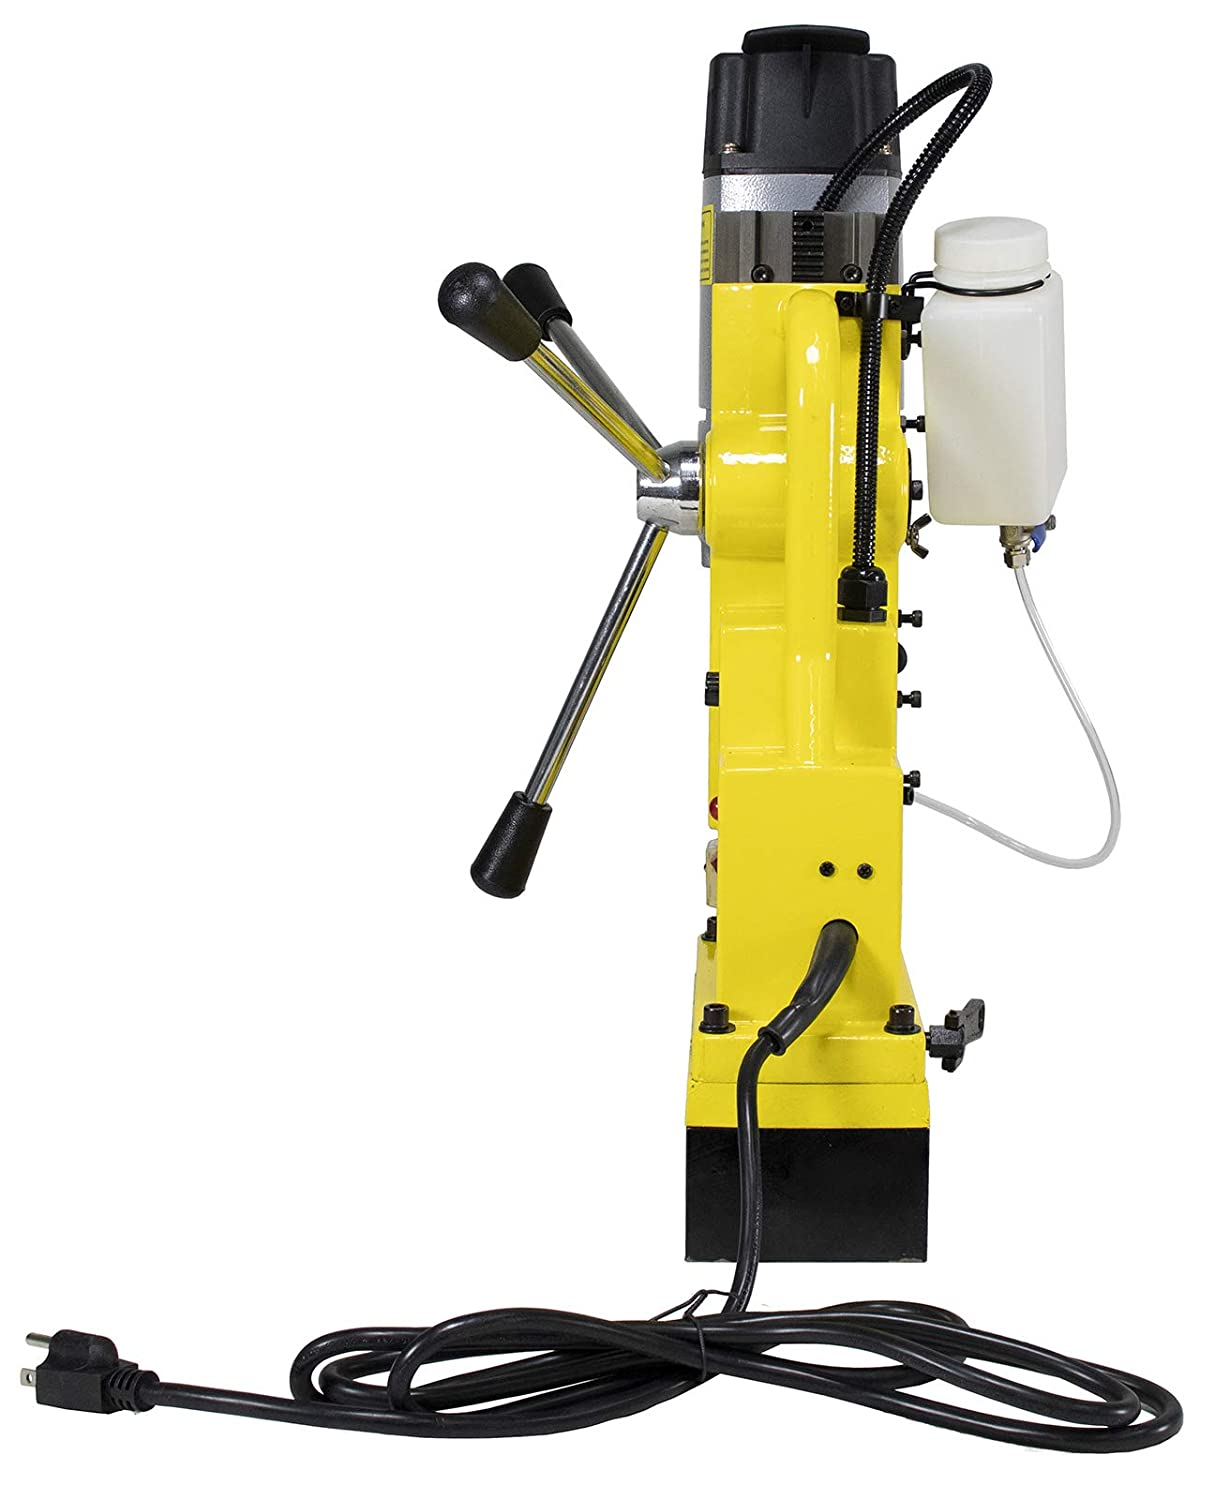 Steel Dragon Tools Magnetic Drill Press with 1-3//4 inch Boring Diameter /& 2700 LBS Magnetic Force